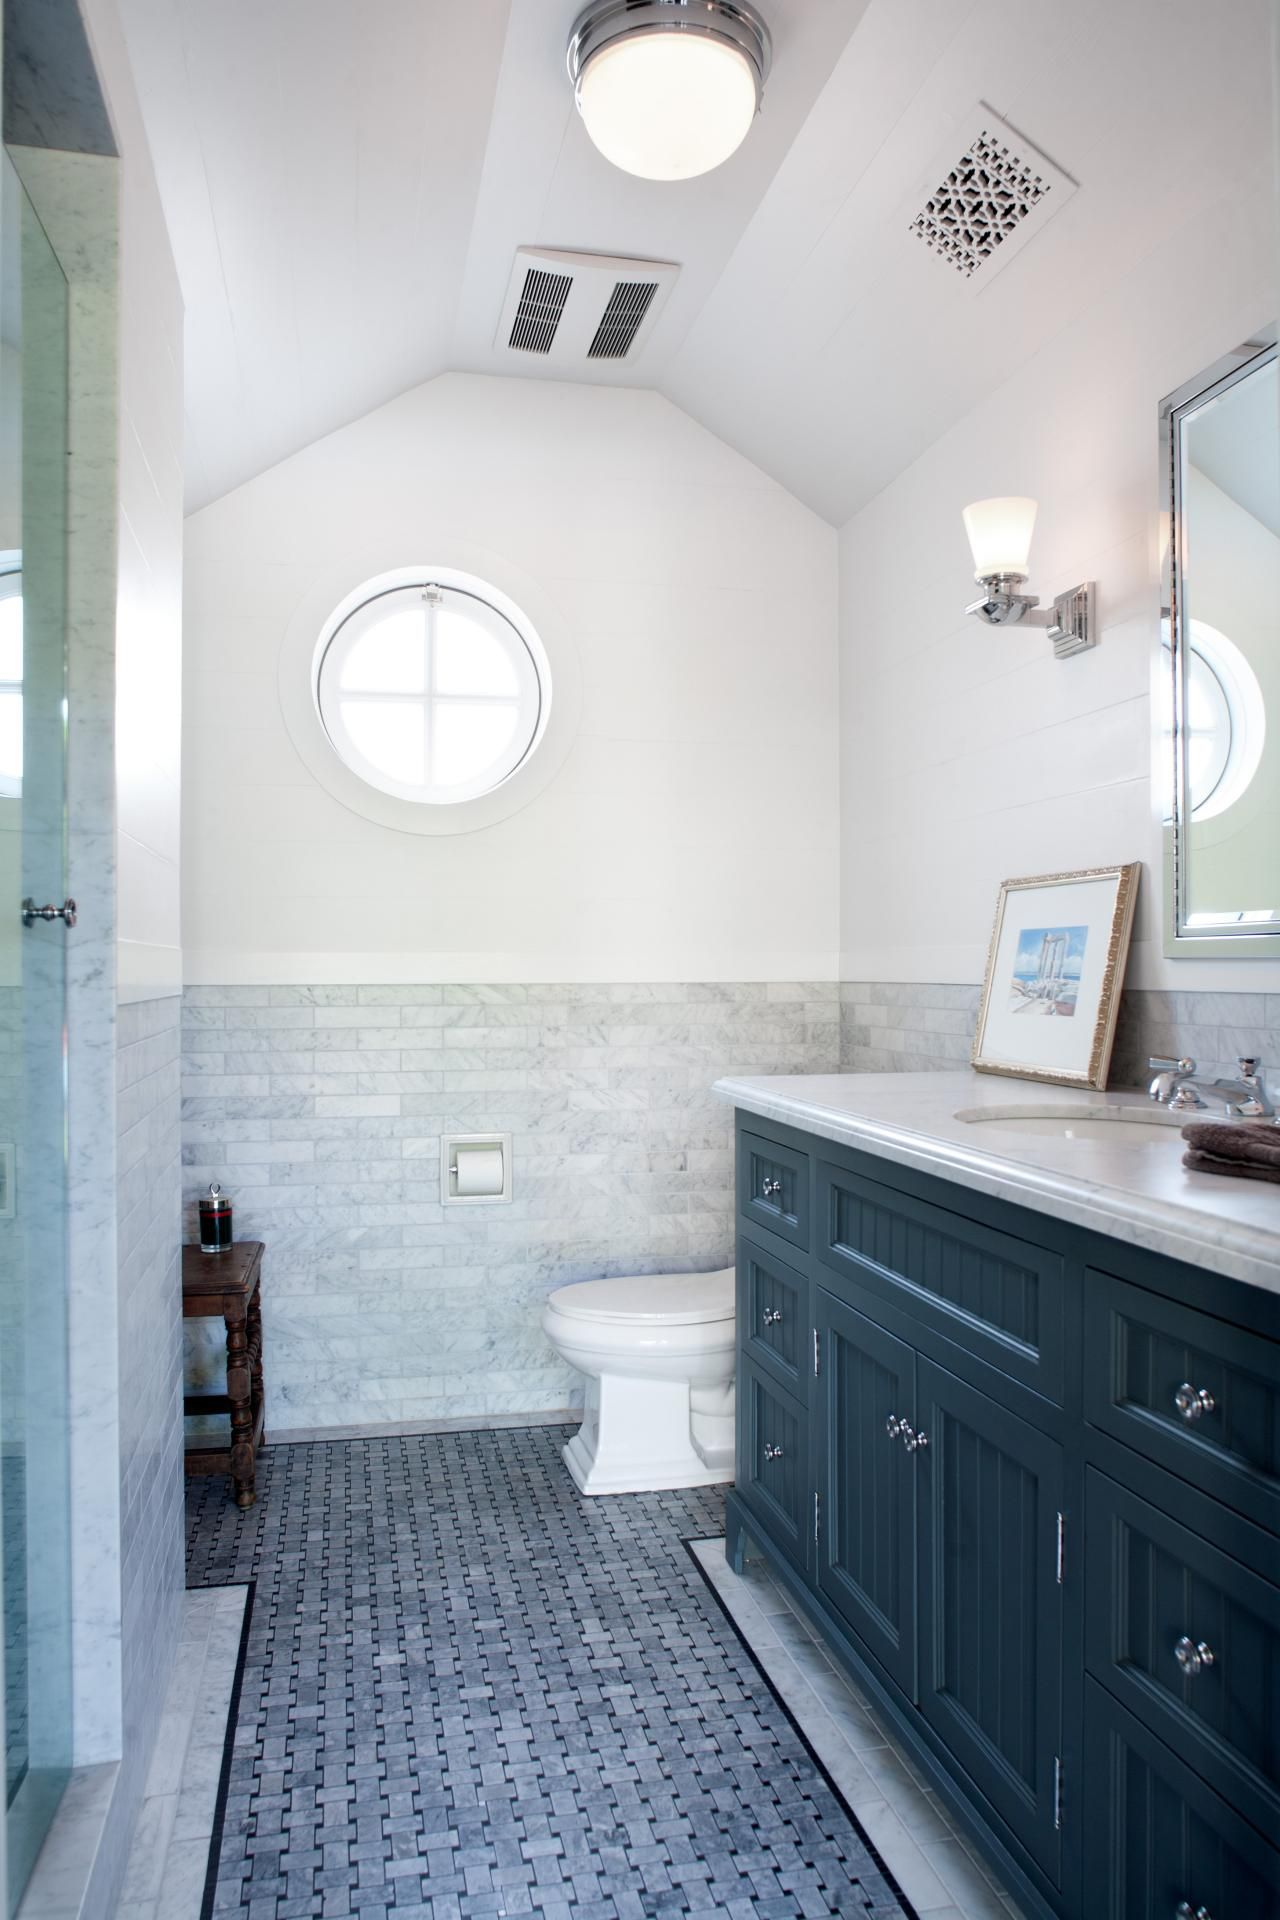 Best Bathroom Flooring Ideas With Images Bathroom Flooring Bathroom Flooring Options Basket Weave Tile